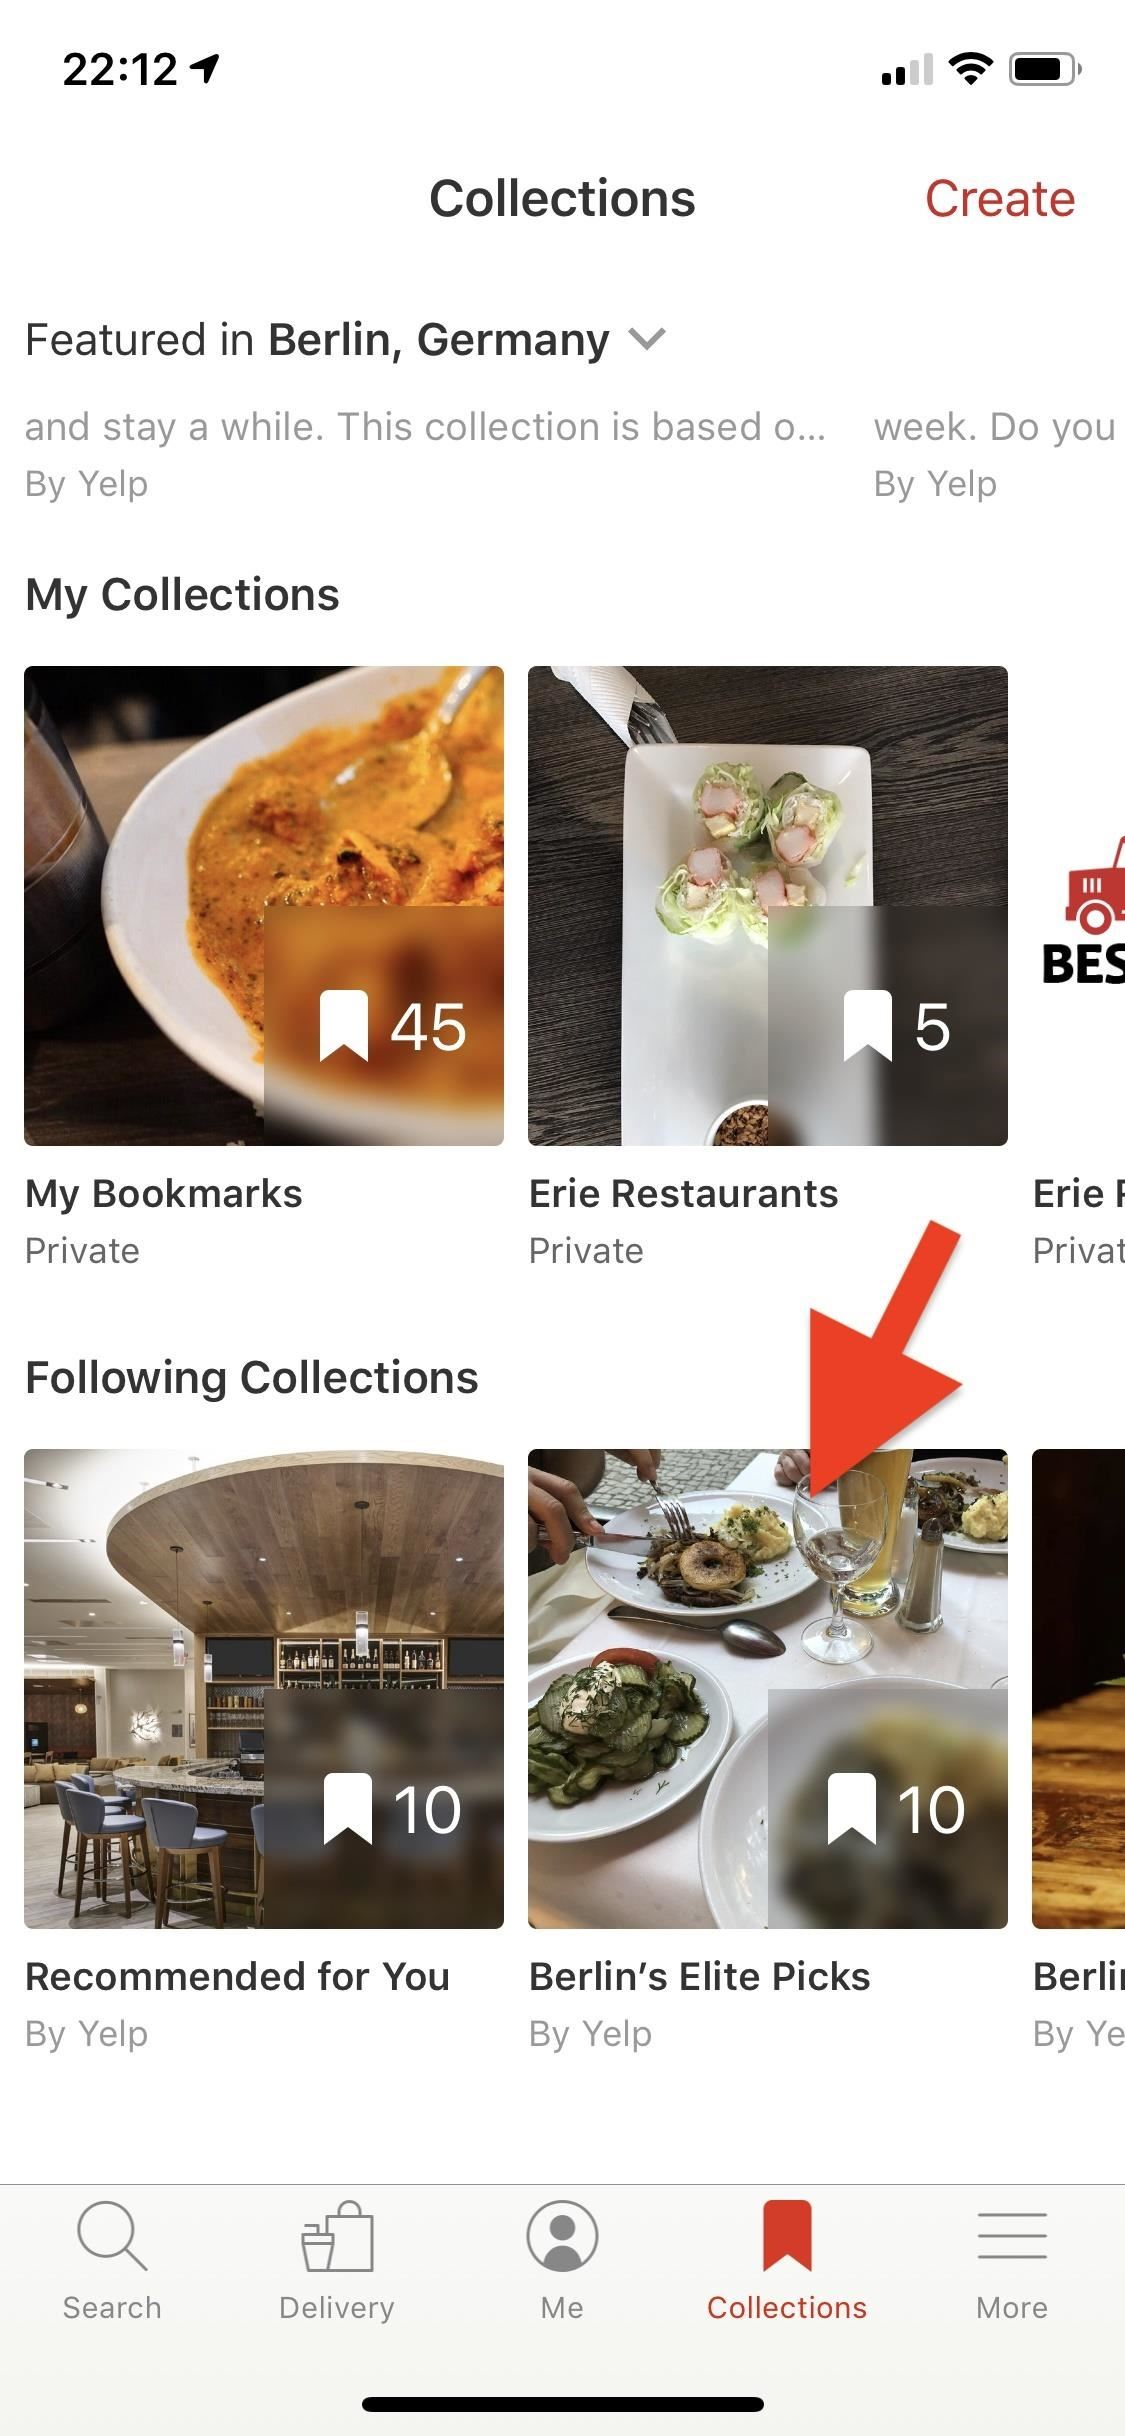 Use Yelp Collections to Find New Places & Keep Your Bookmarked Locations More Organized